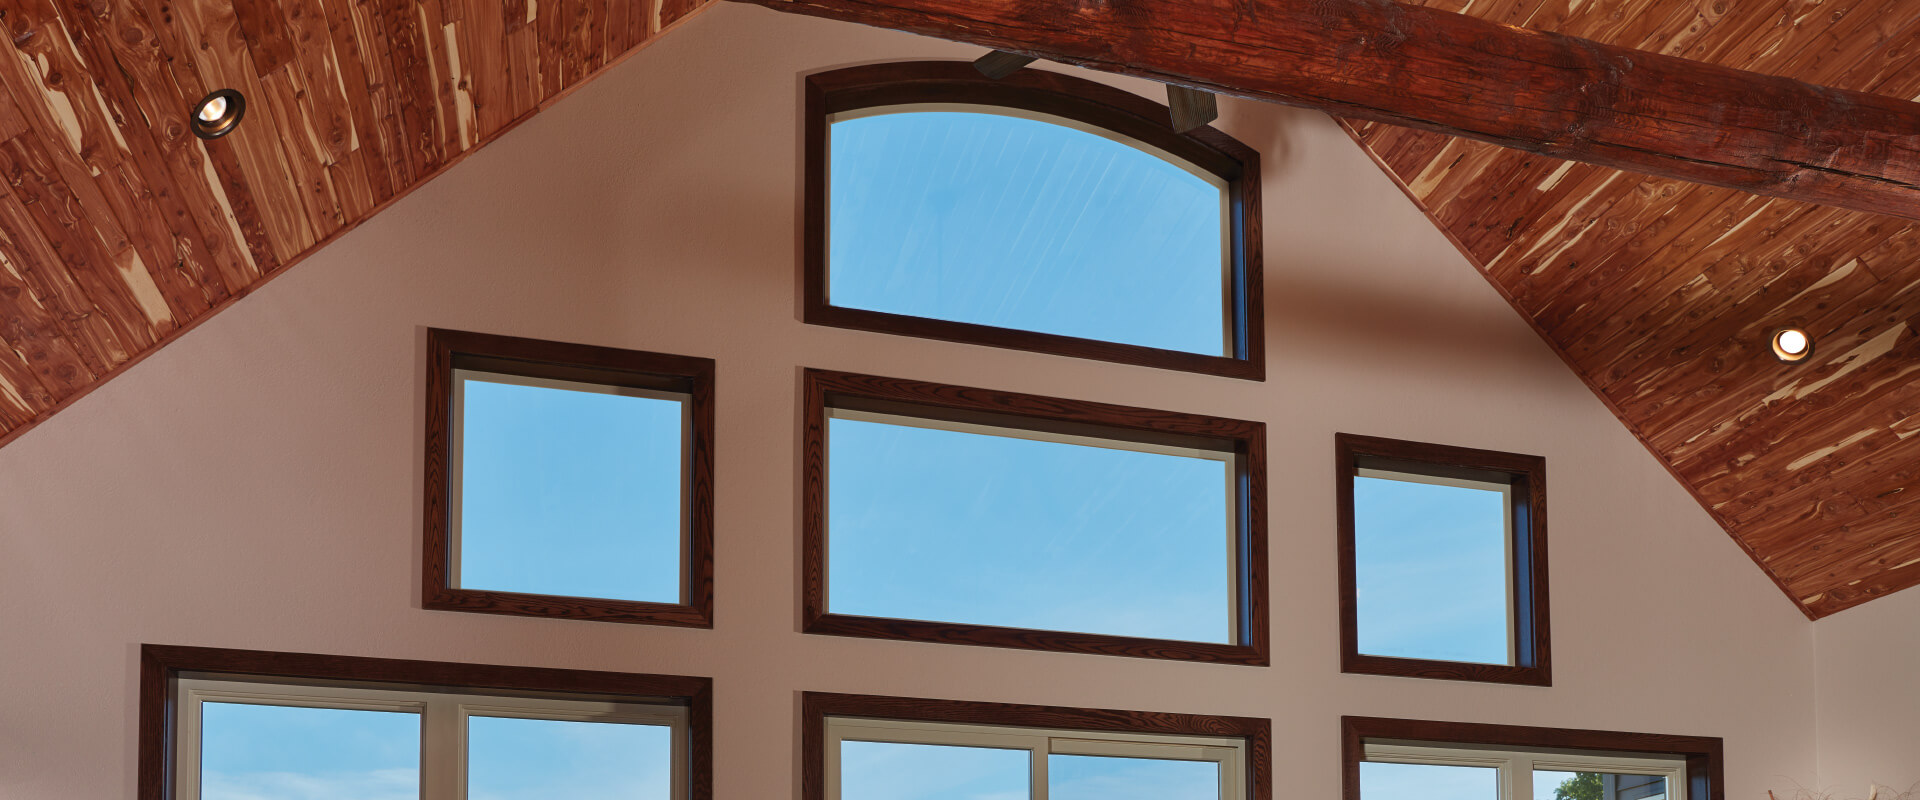 Forgent Series direct set and radius windows with a wood interior.